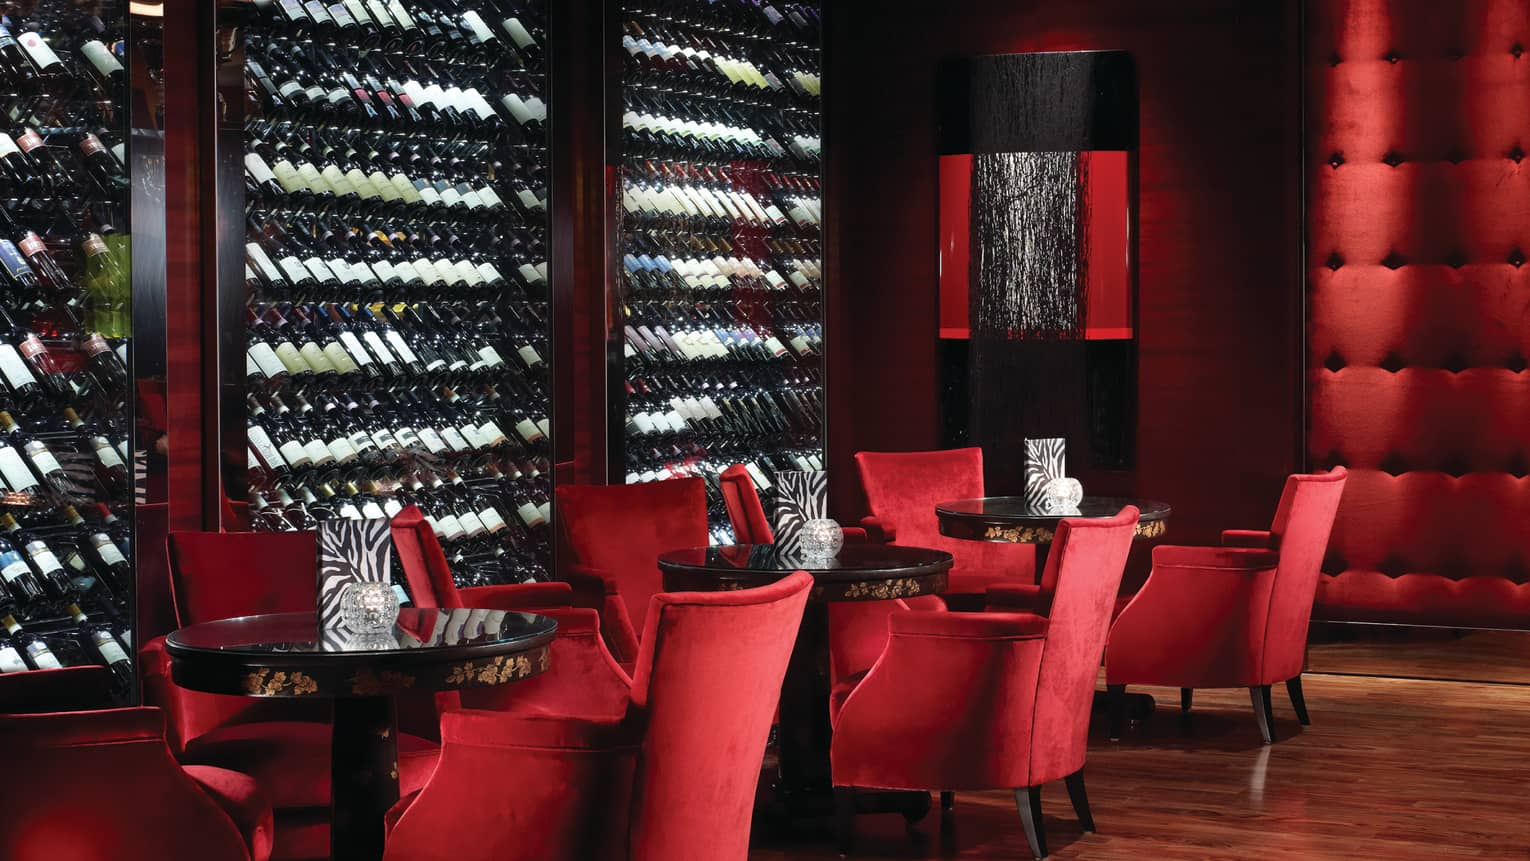 Amaranto Bar red velvet lounge chairs by large glass cellars lined with bottles